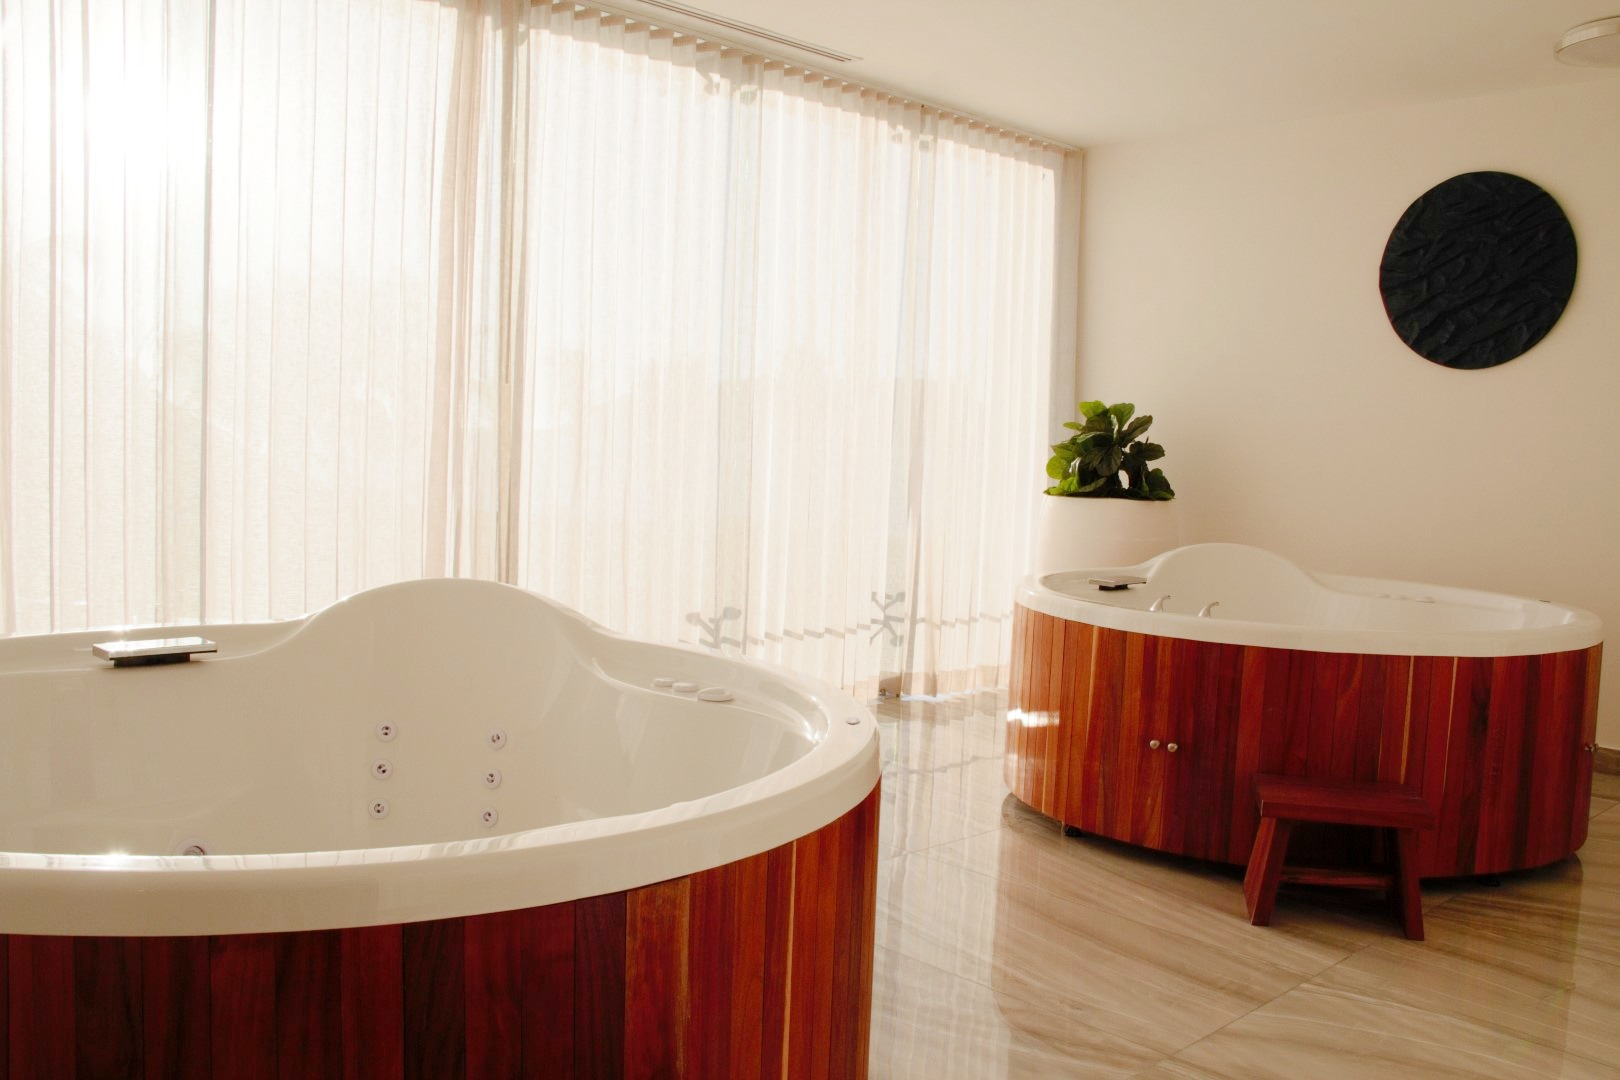 Jacuzzi tubs in spa area.